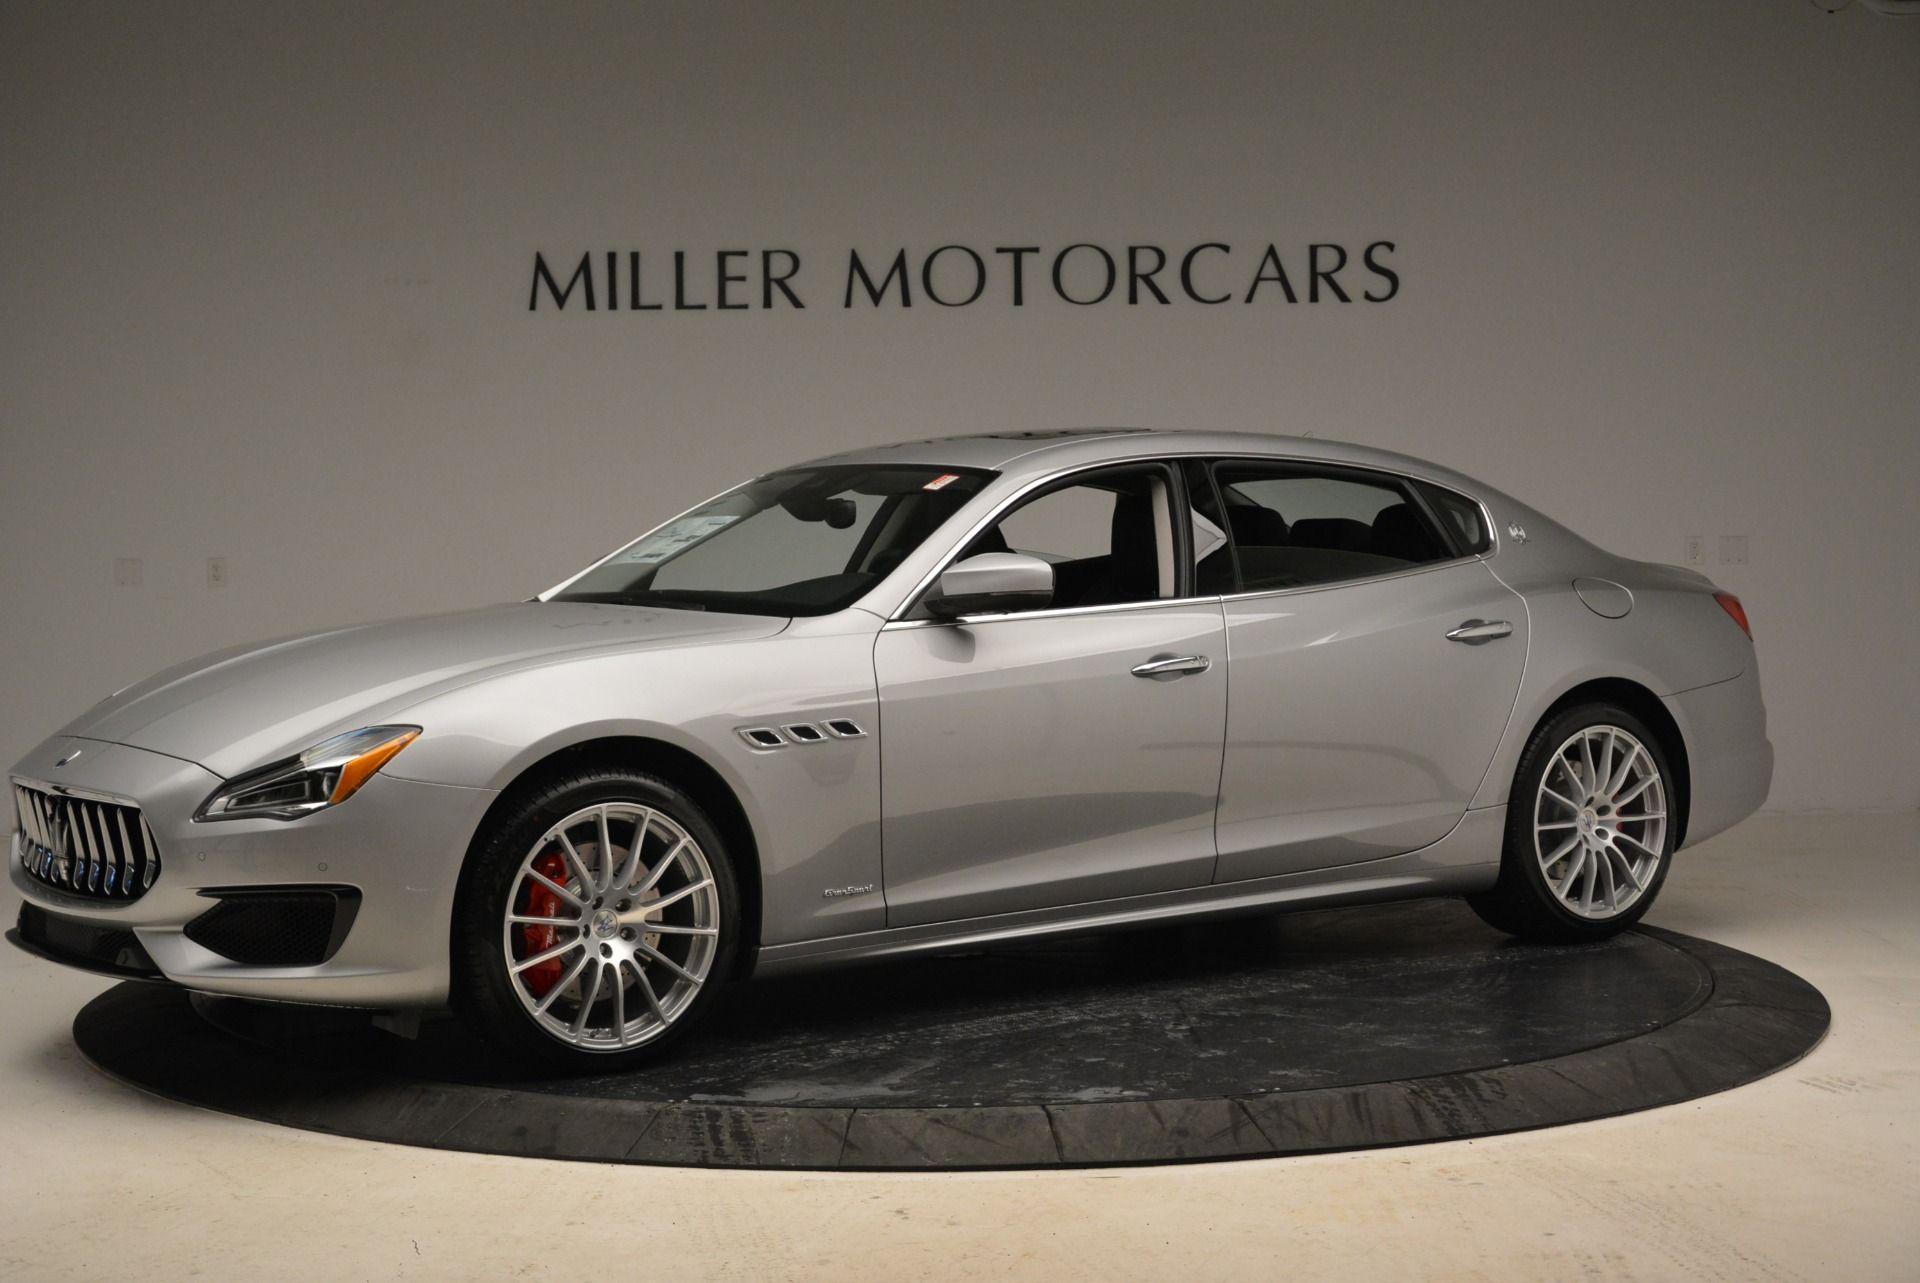 Used 2018 Maserati Quattroporte S Q4 Gransport for sale $66,900 at Aston Martin of Greenwich in Greenwich CT 06830 1